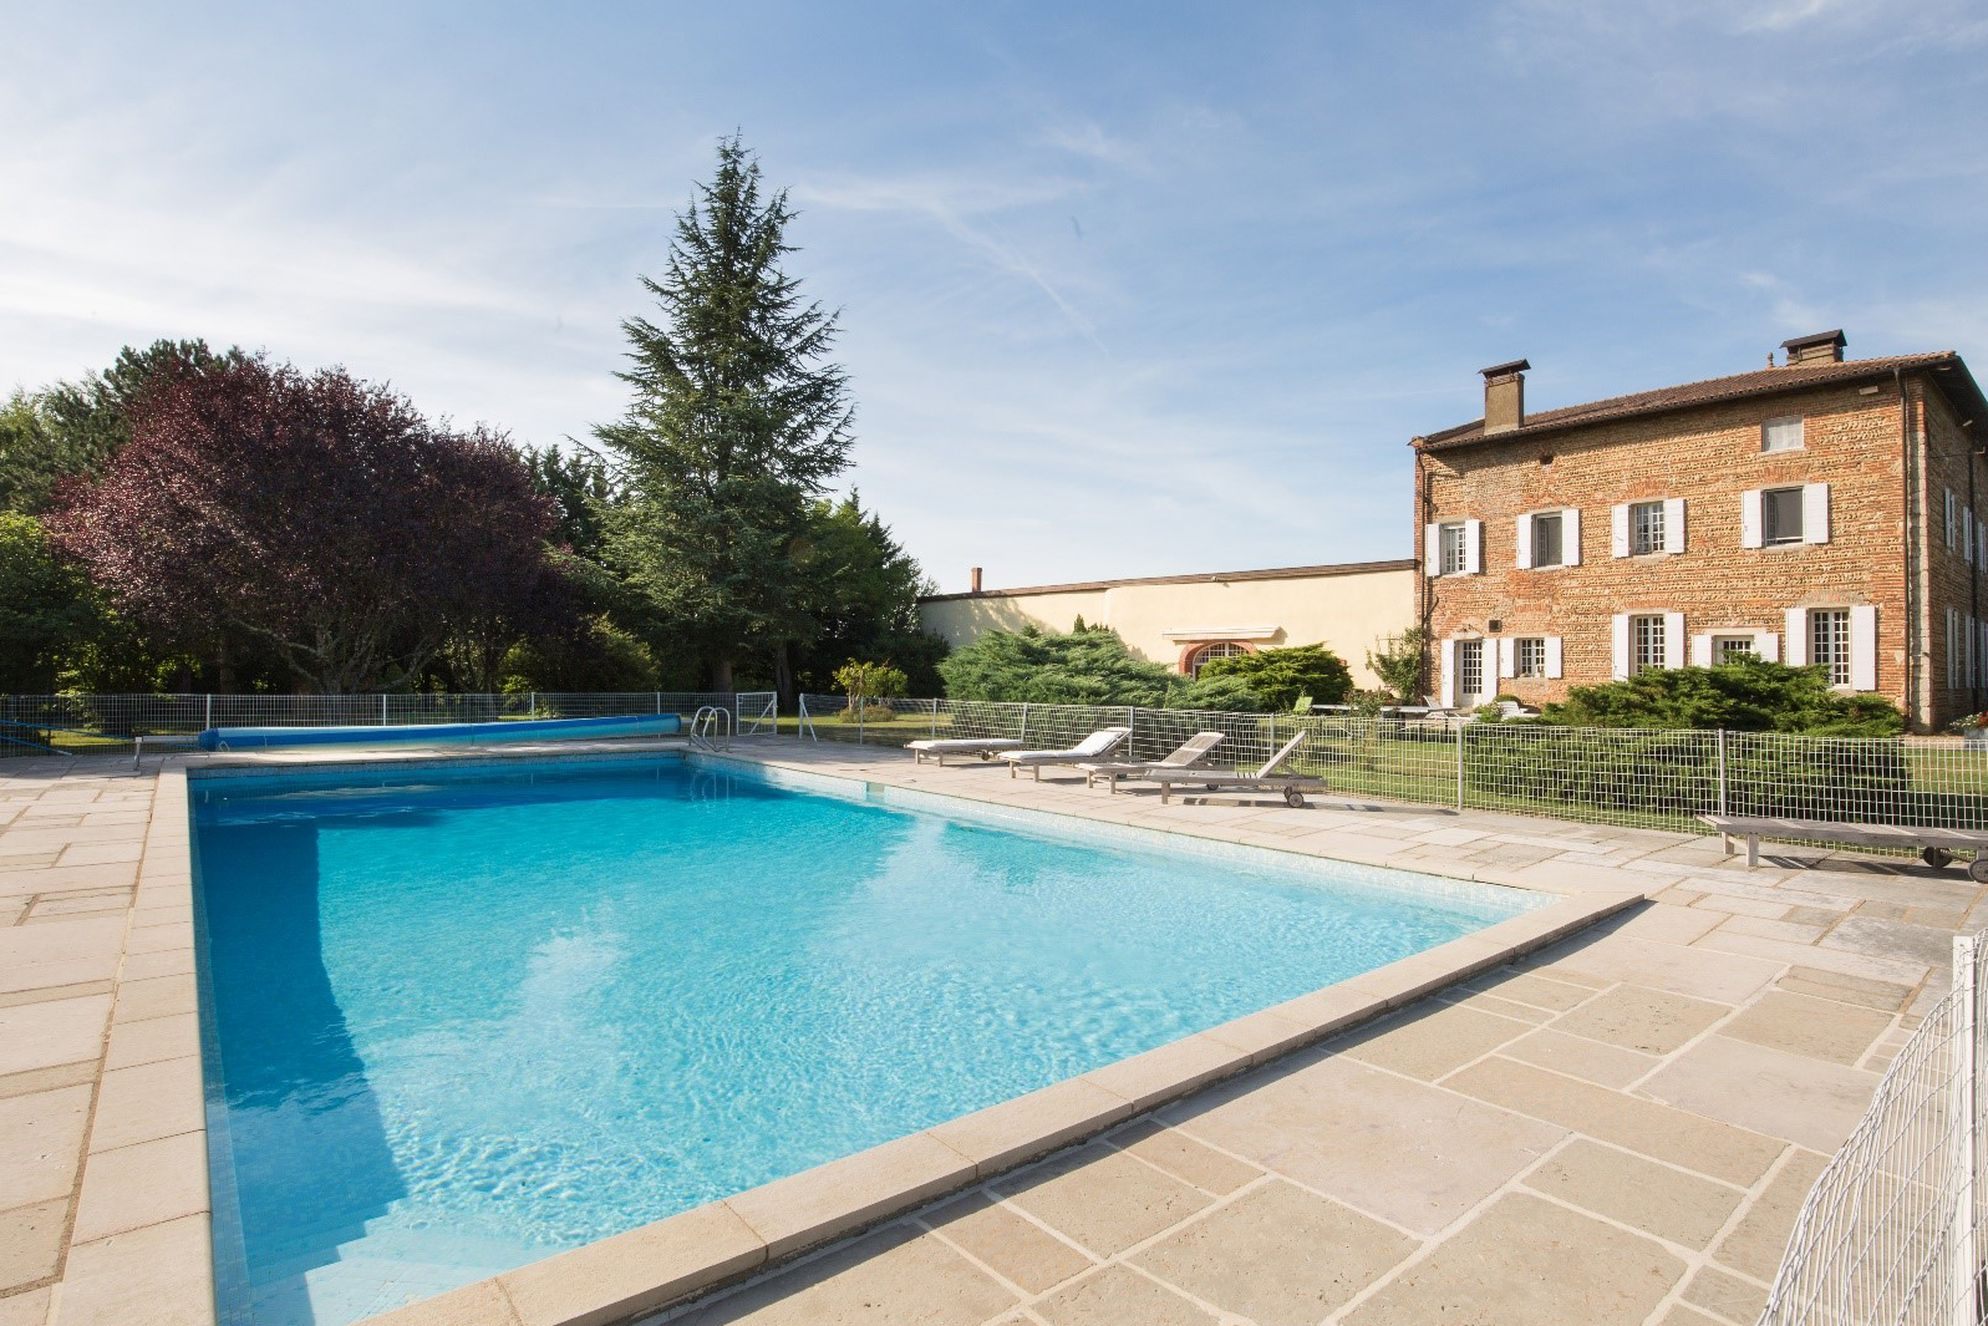 Large outdoor swimming pool in secluded setting at Domaine de Boiron